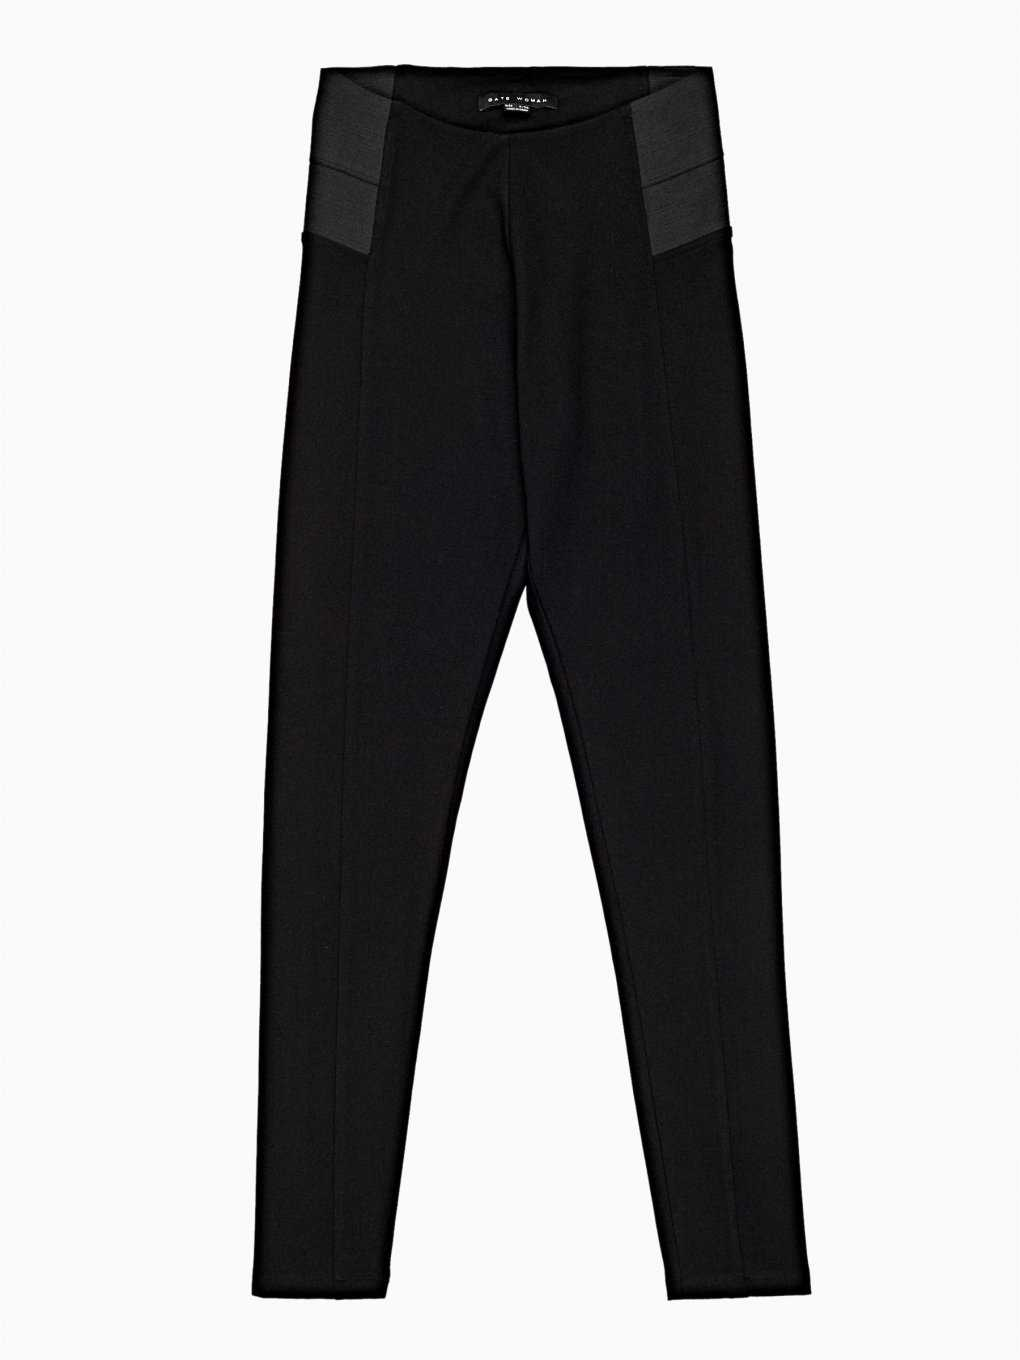 High-waist slim trousers